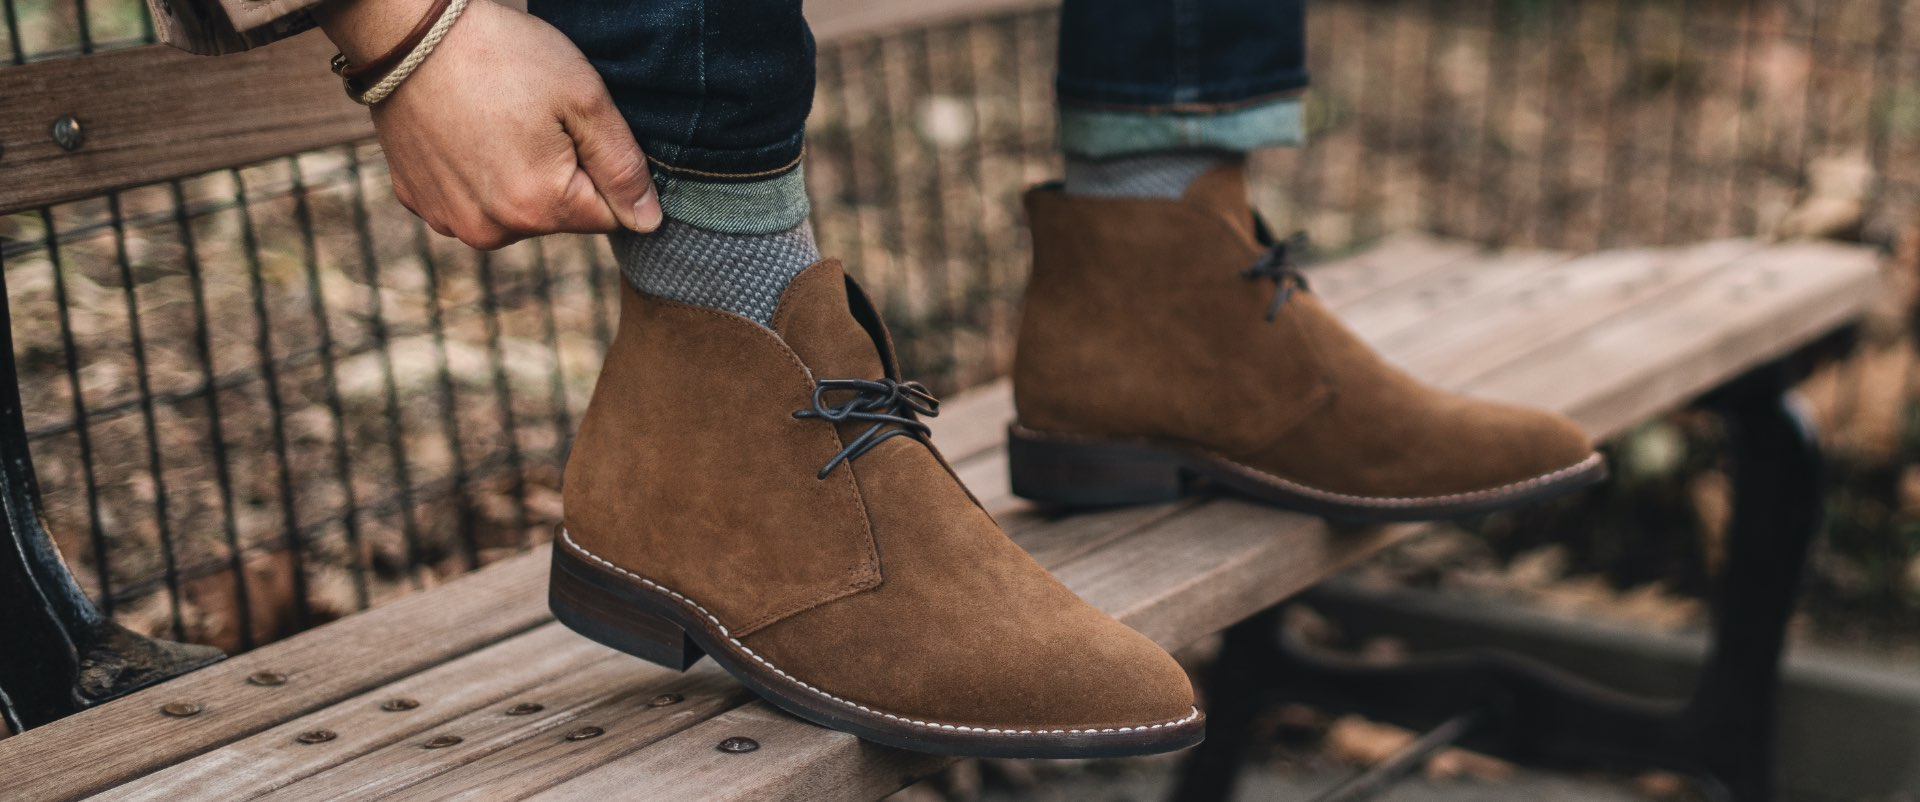 World's Best Boots: The Chukka Boot